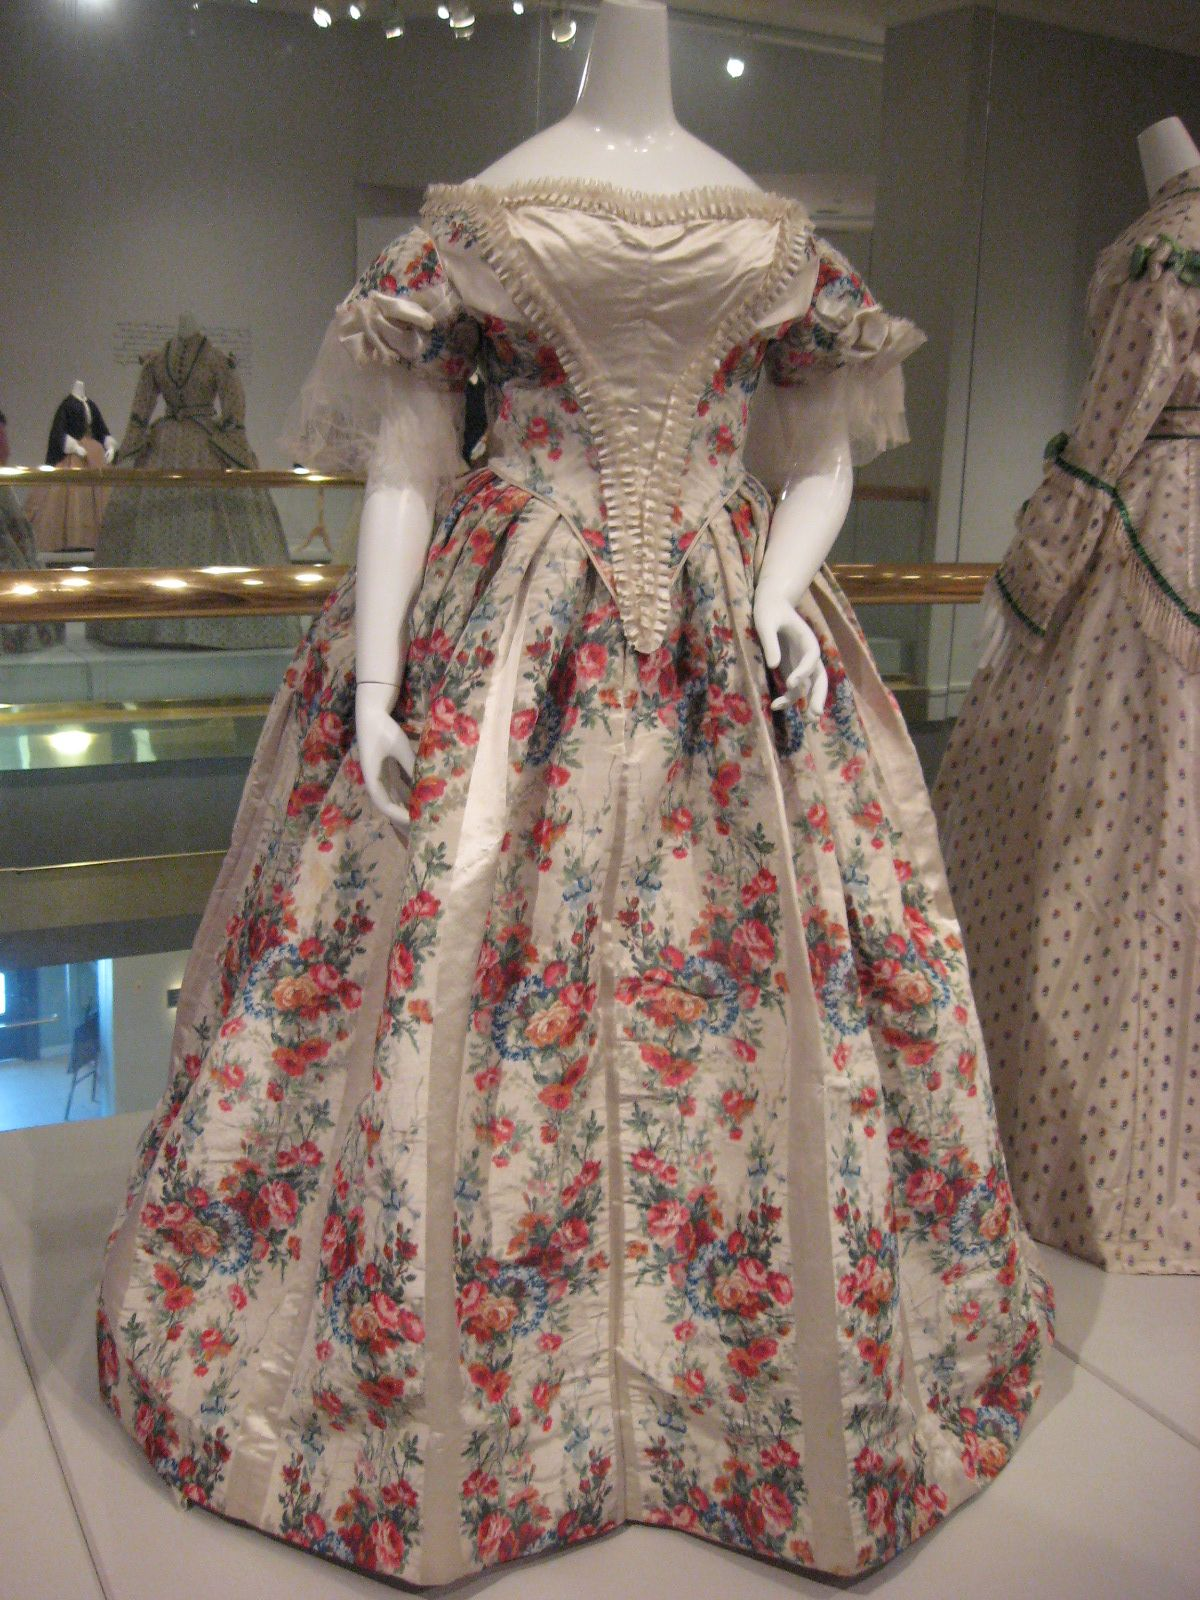 KSMF -  Ivory silk evening gown with warp printed flowers, circa 1860.